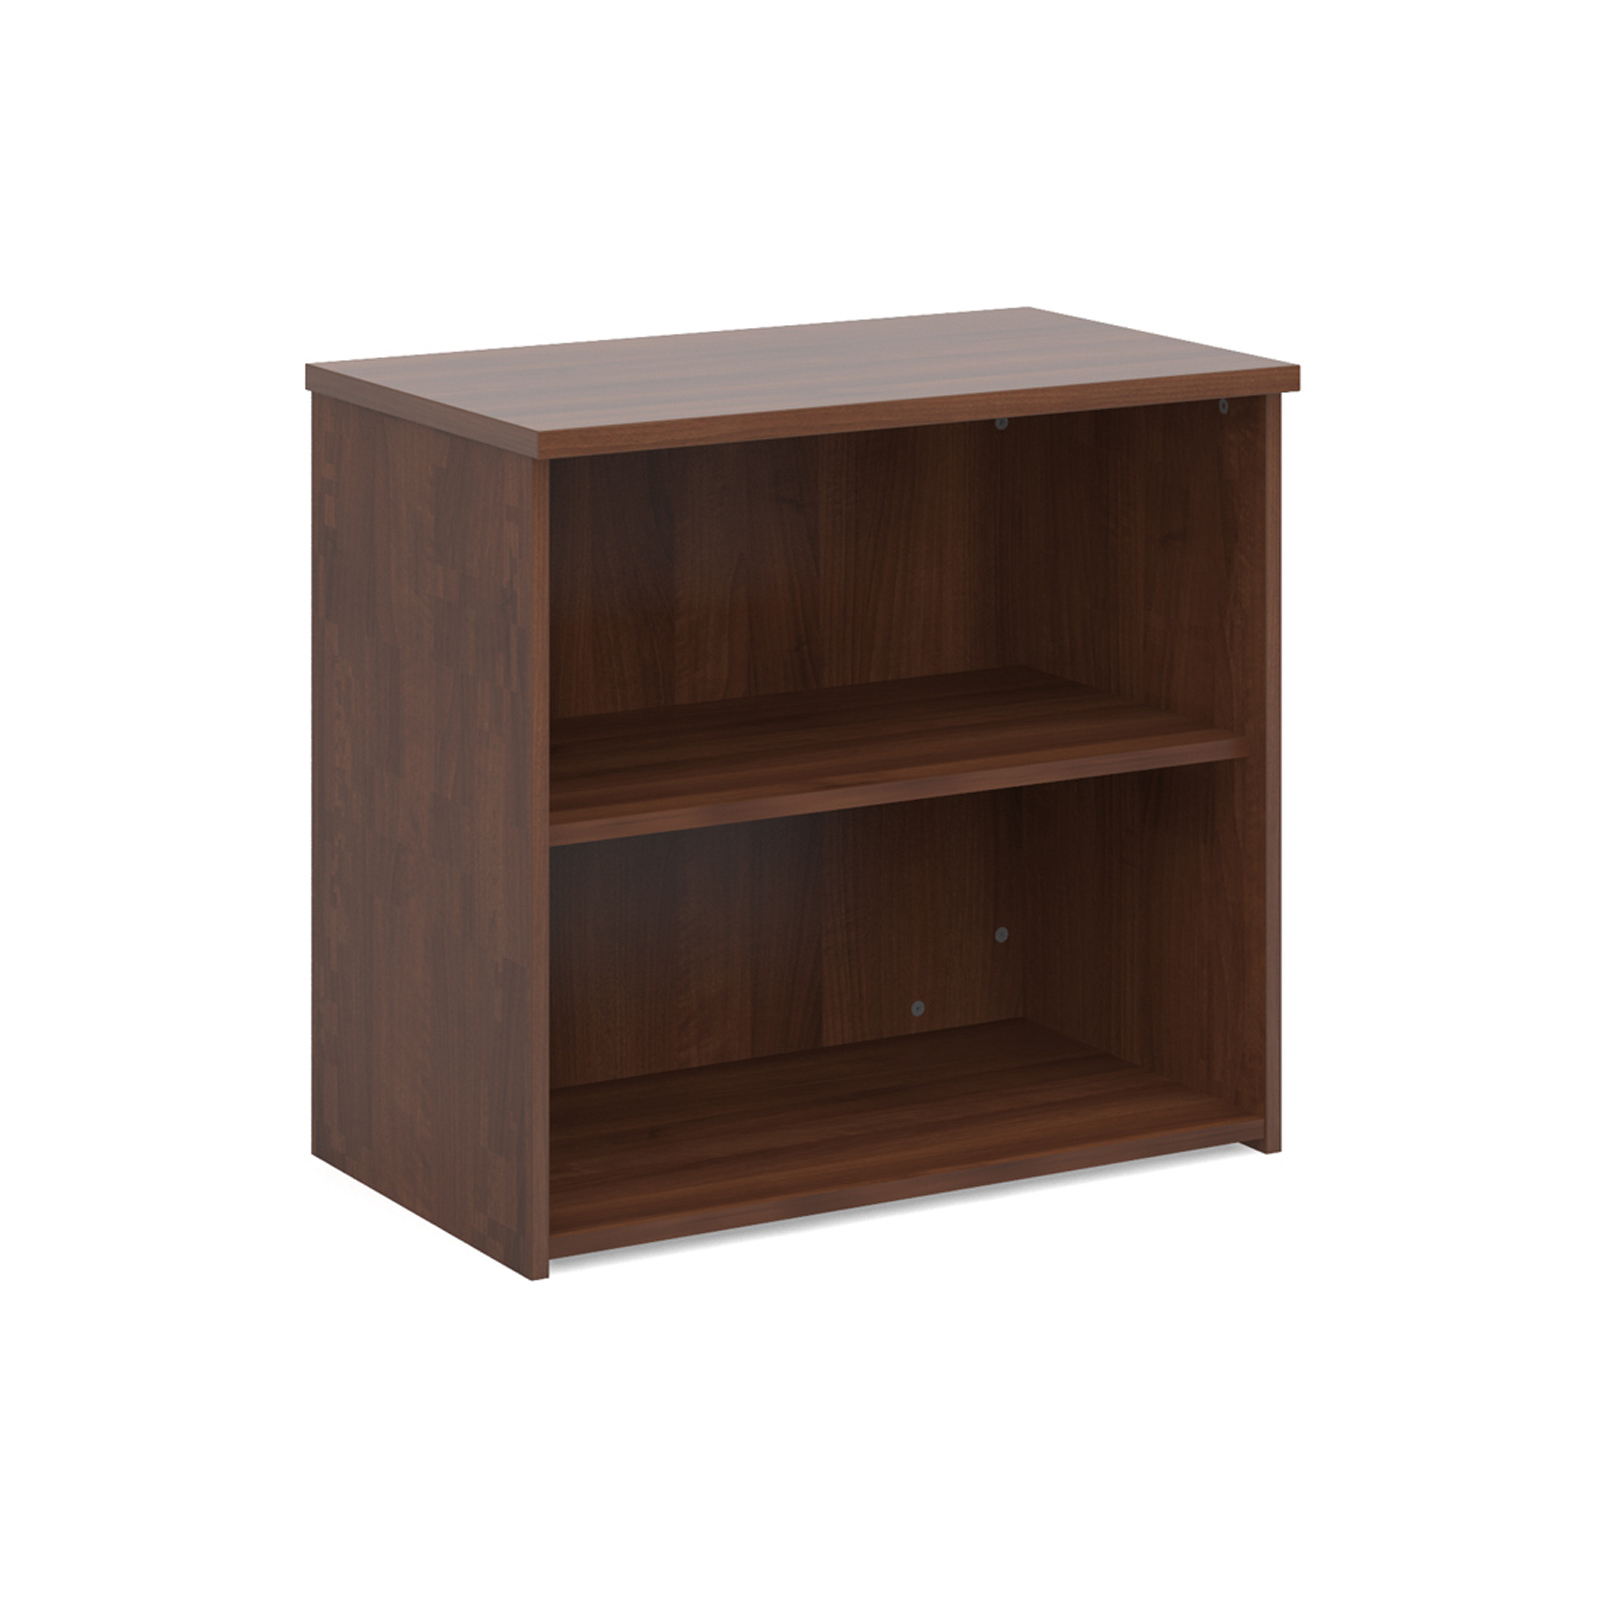 Up To 1200mm High Universal bookcase 740mm high with 1 shelf - walnut